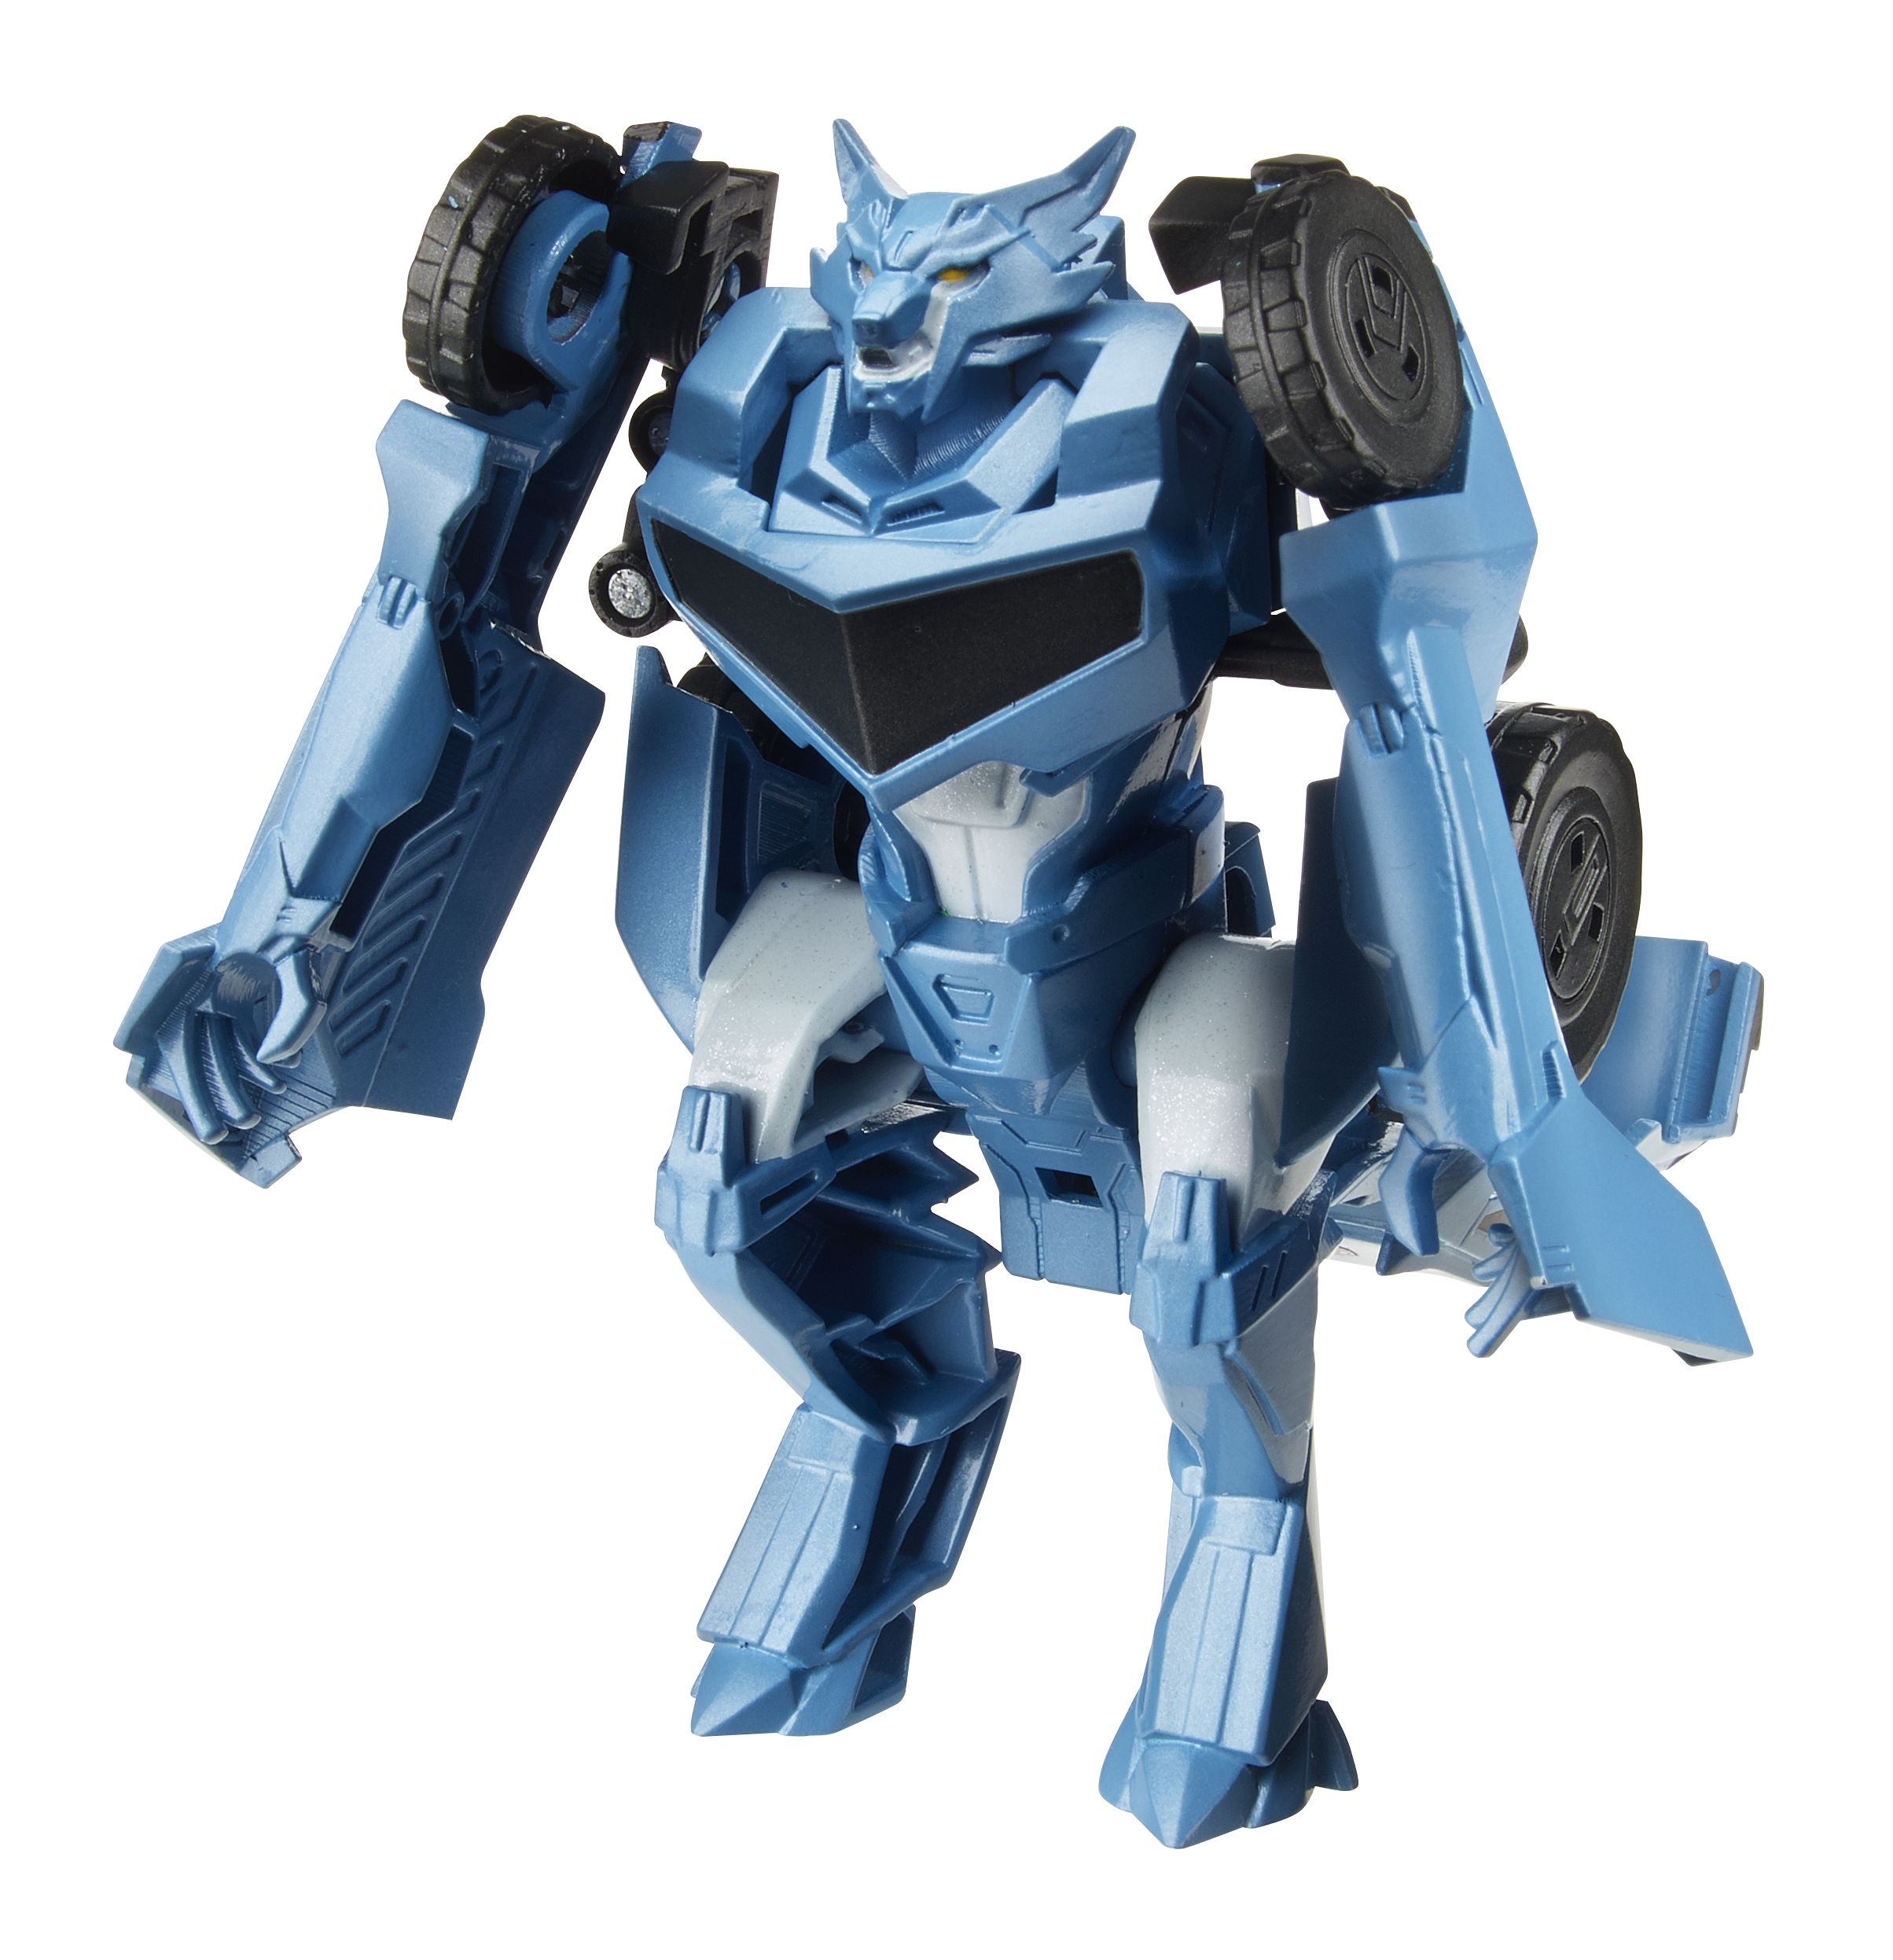 Transformers Hasbro RID Robots in Disguise One-Step Changers Figure Steeljaw